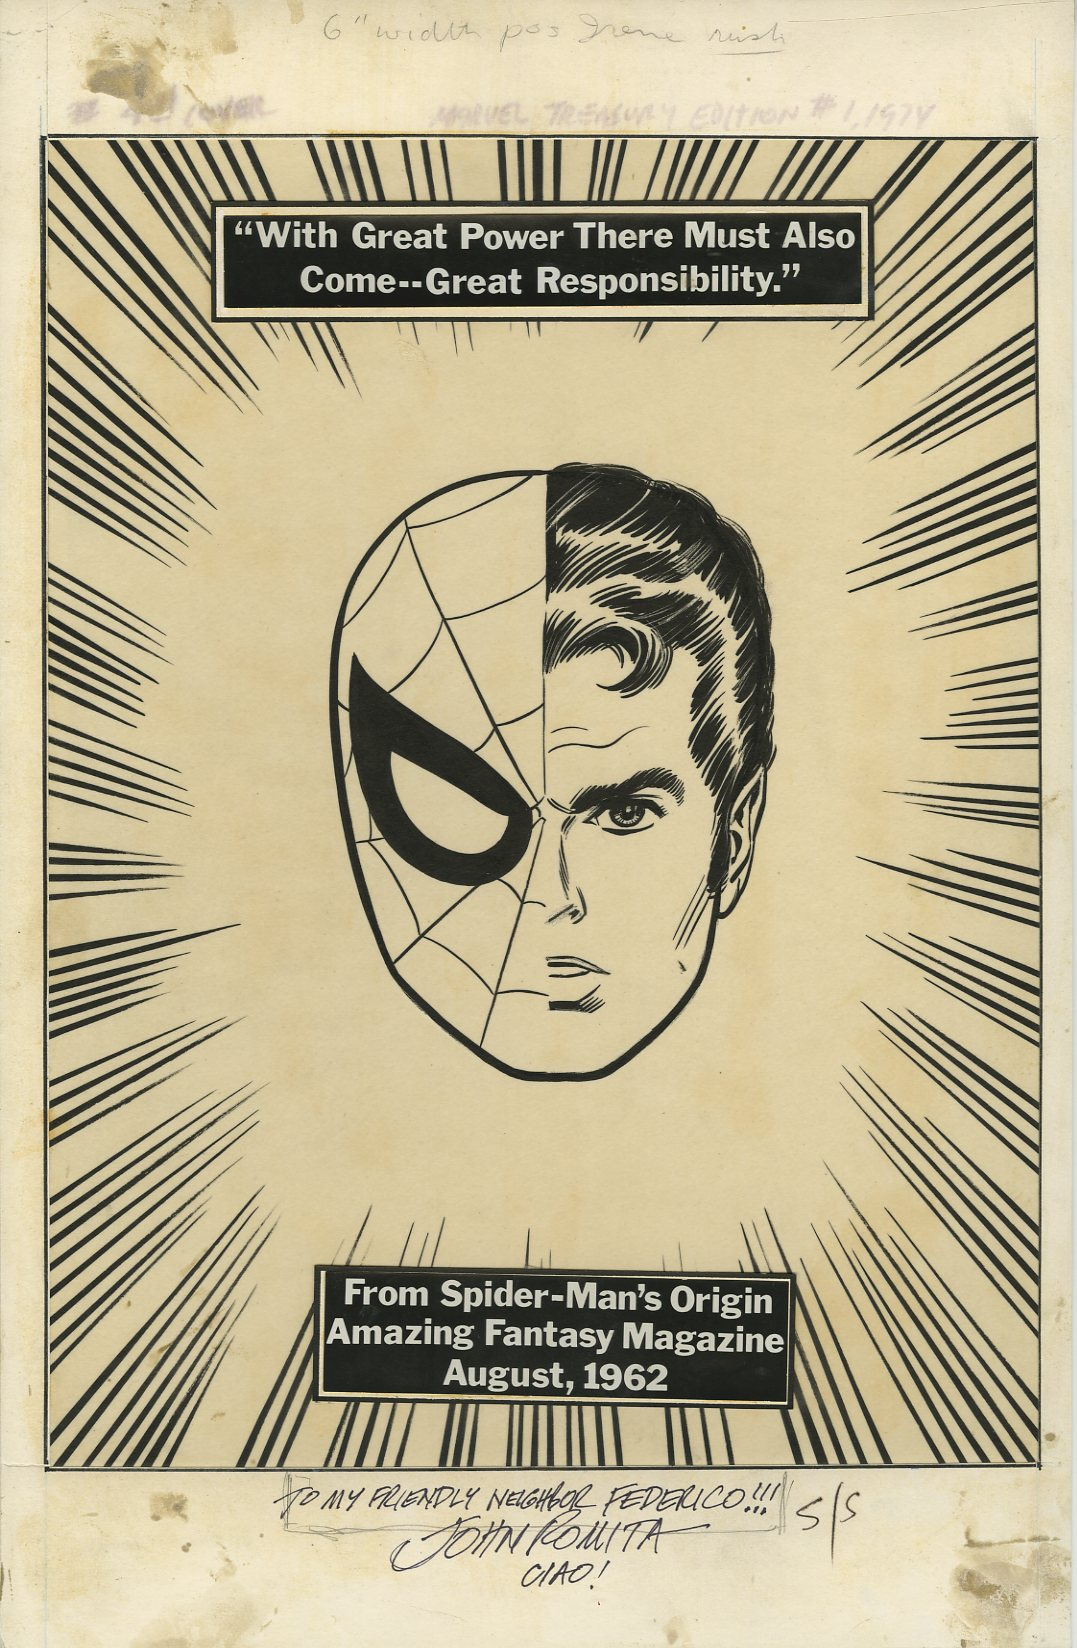 Web Arted Jul 17th